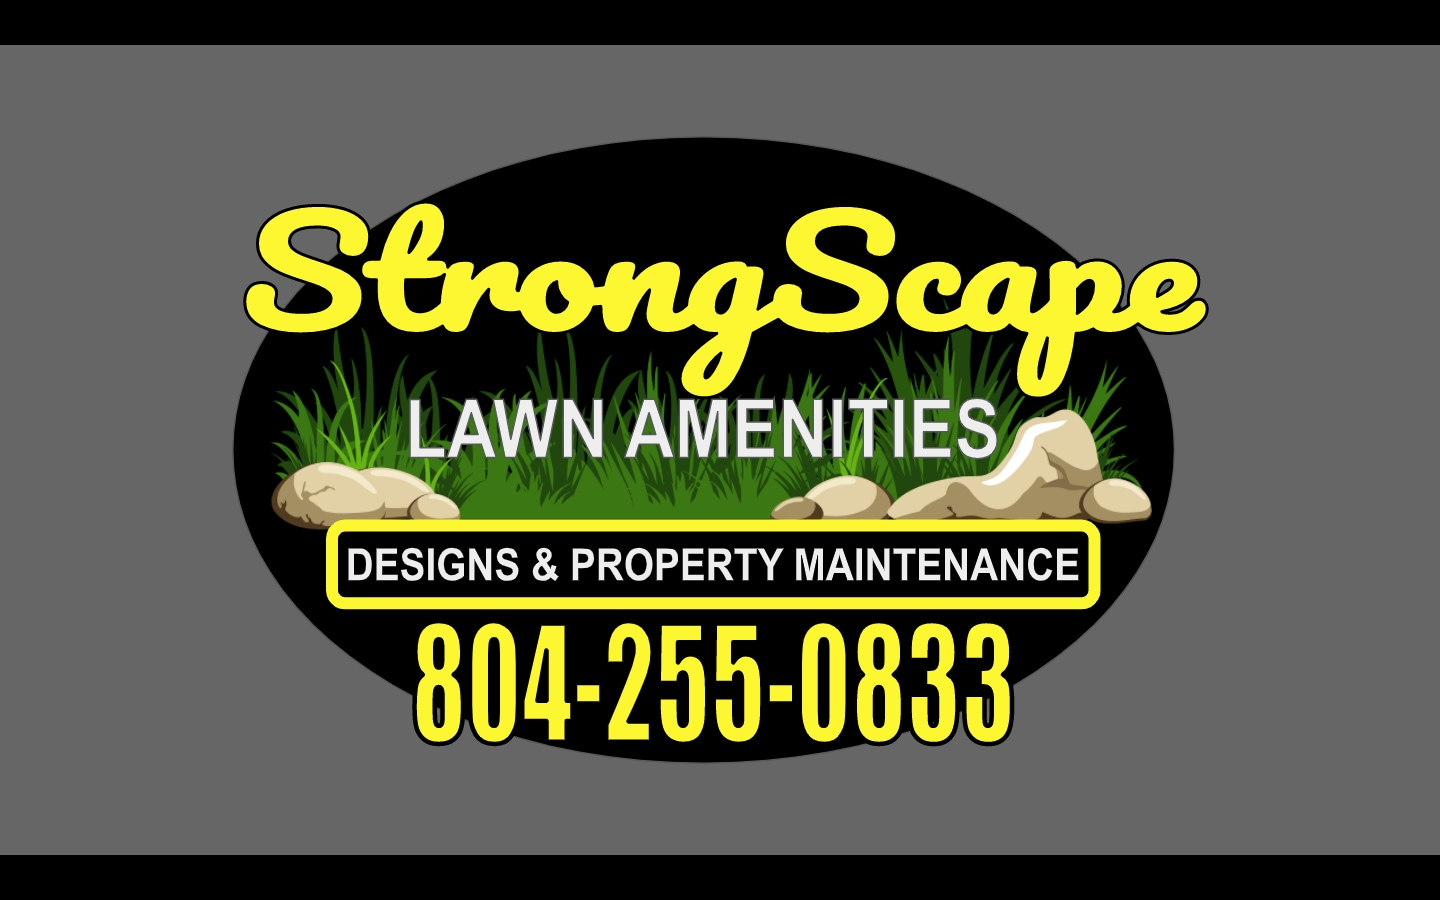 StrongScape Lawn Amenities